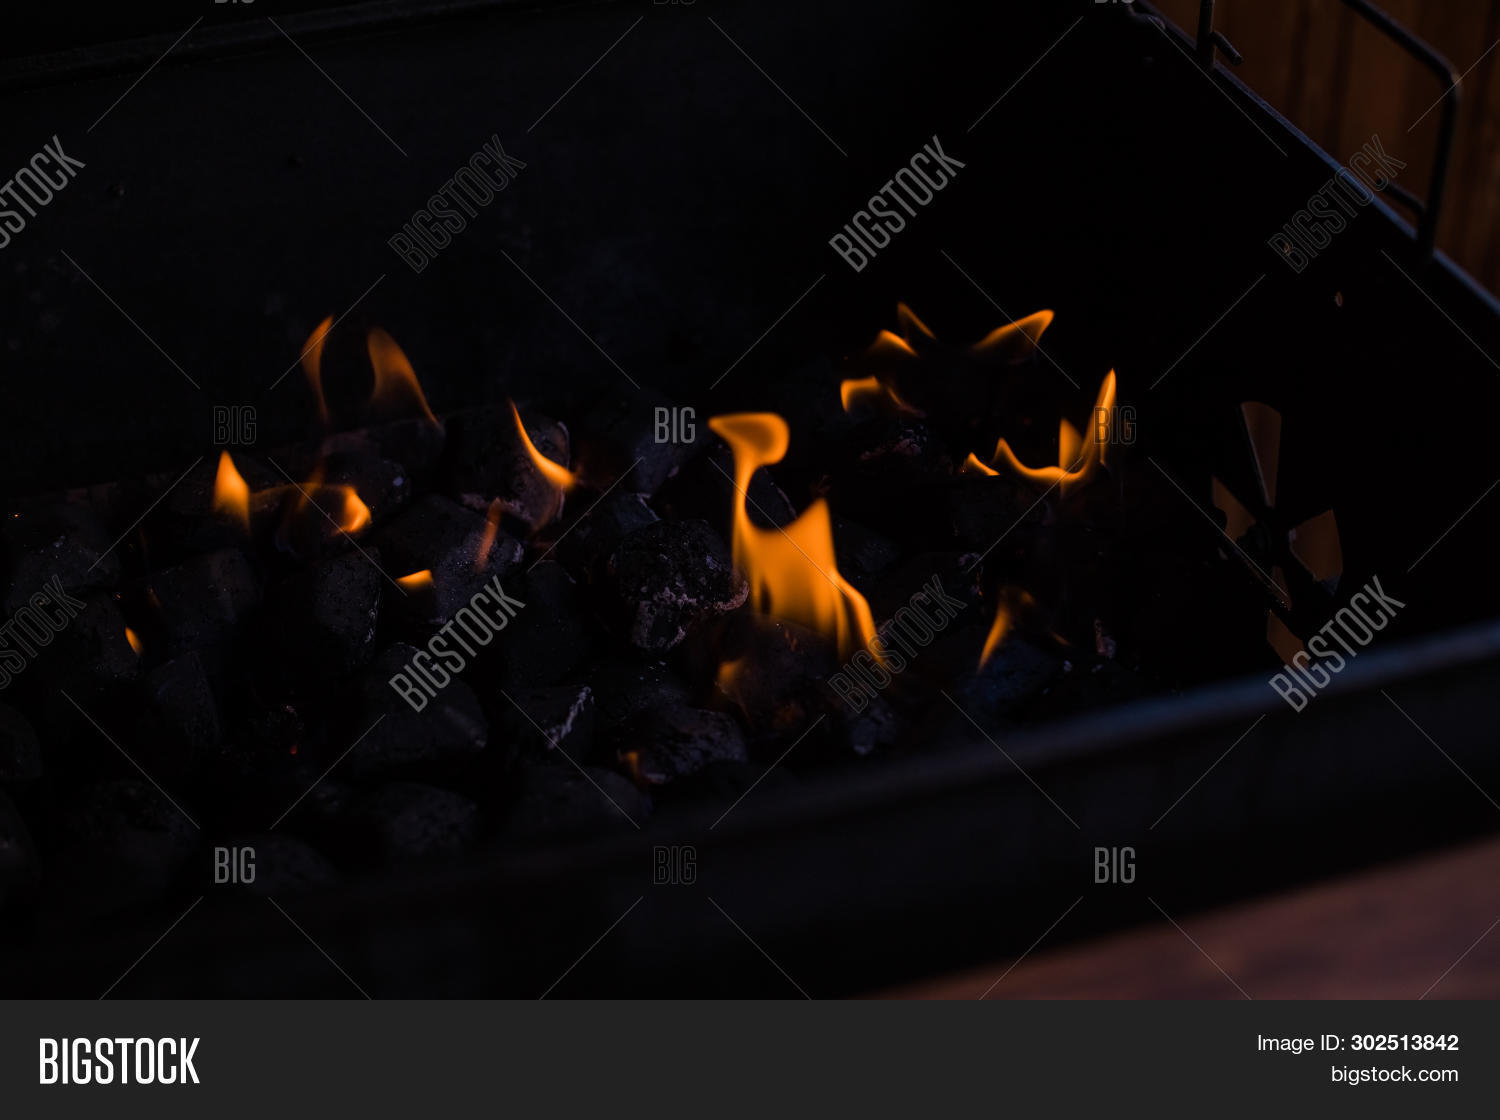 Hot Coals In The Fire.burning Coals In The Barbecue, Fire In The Grill.charcoal Preparing For Grilli